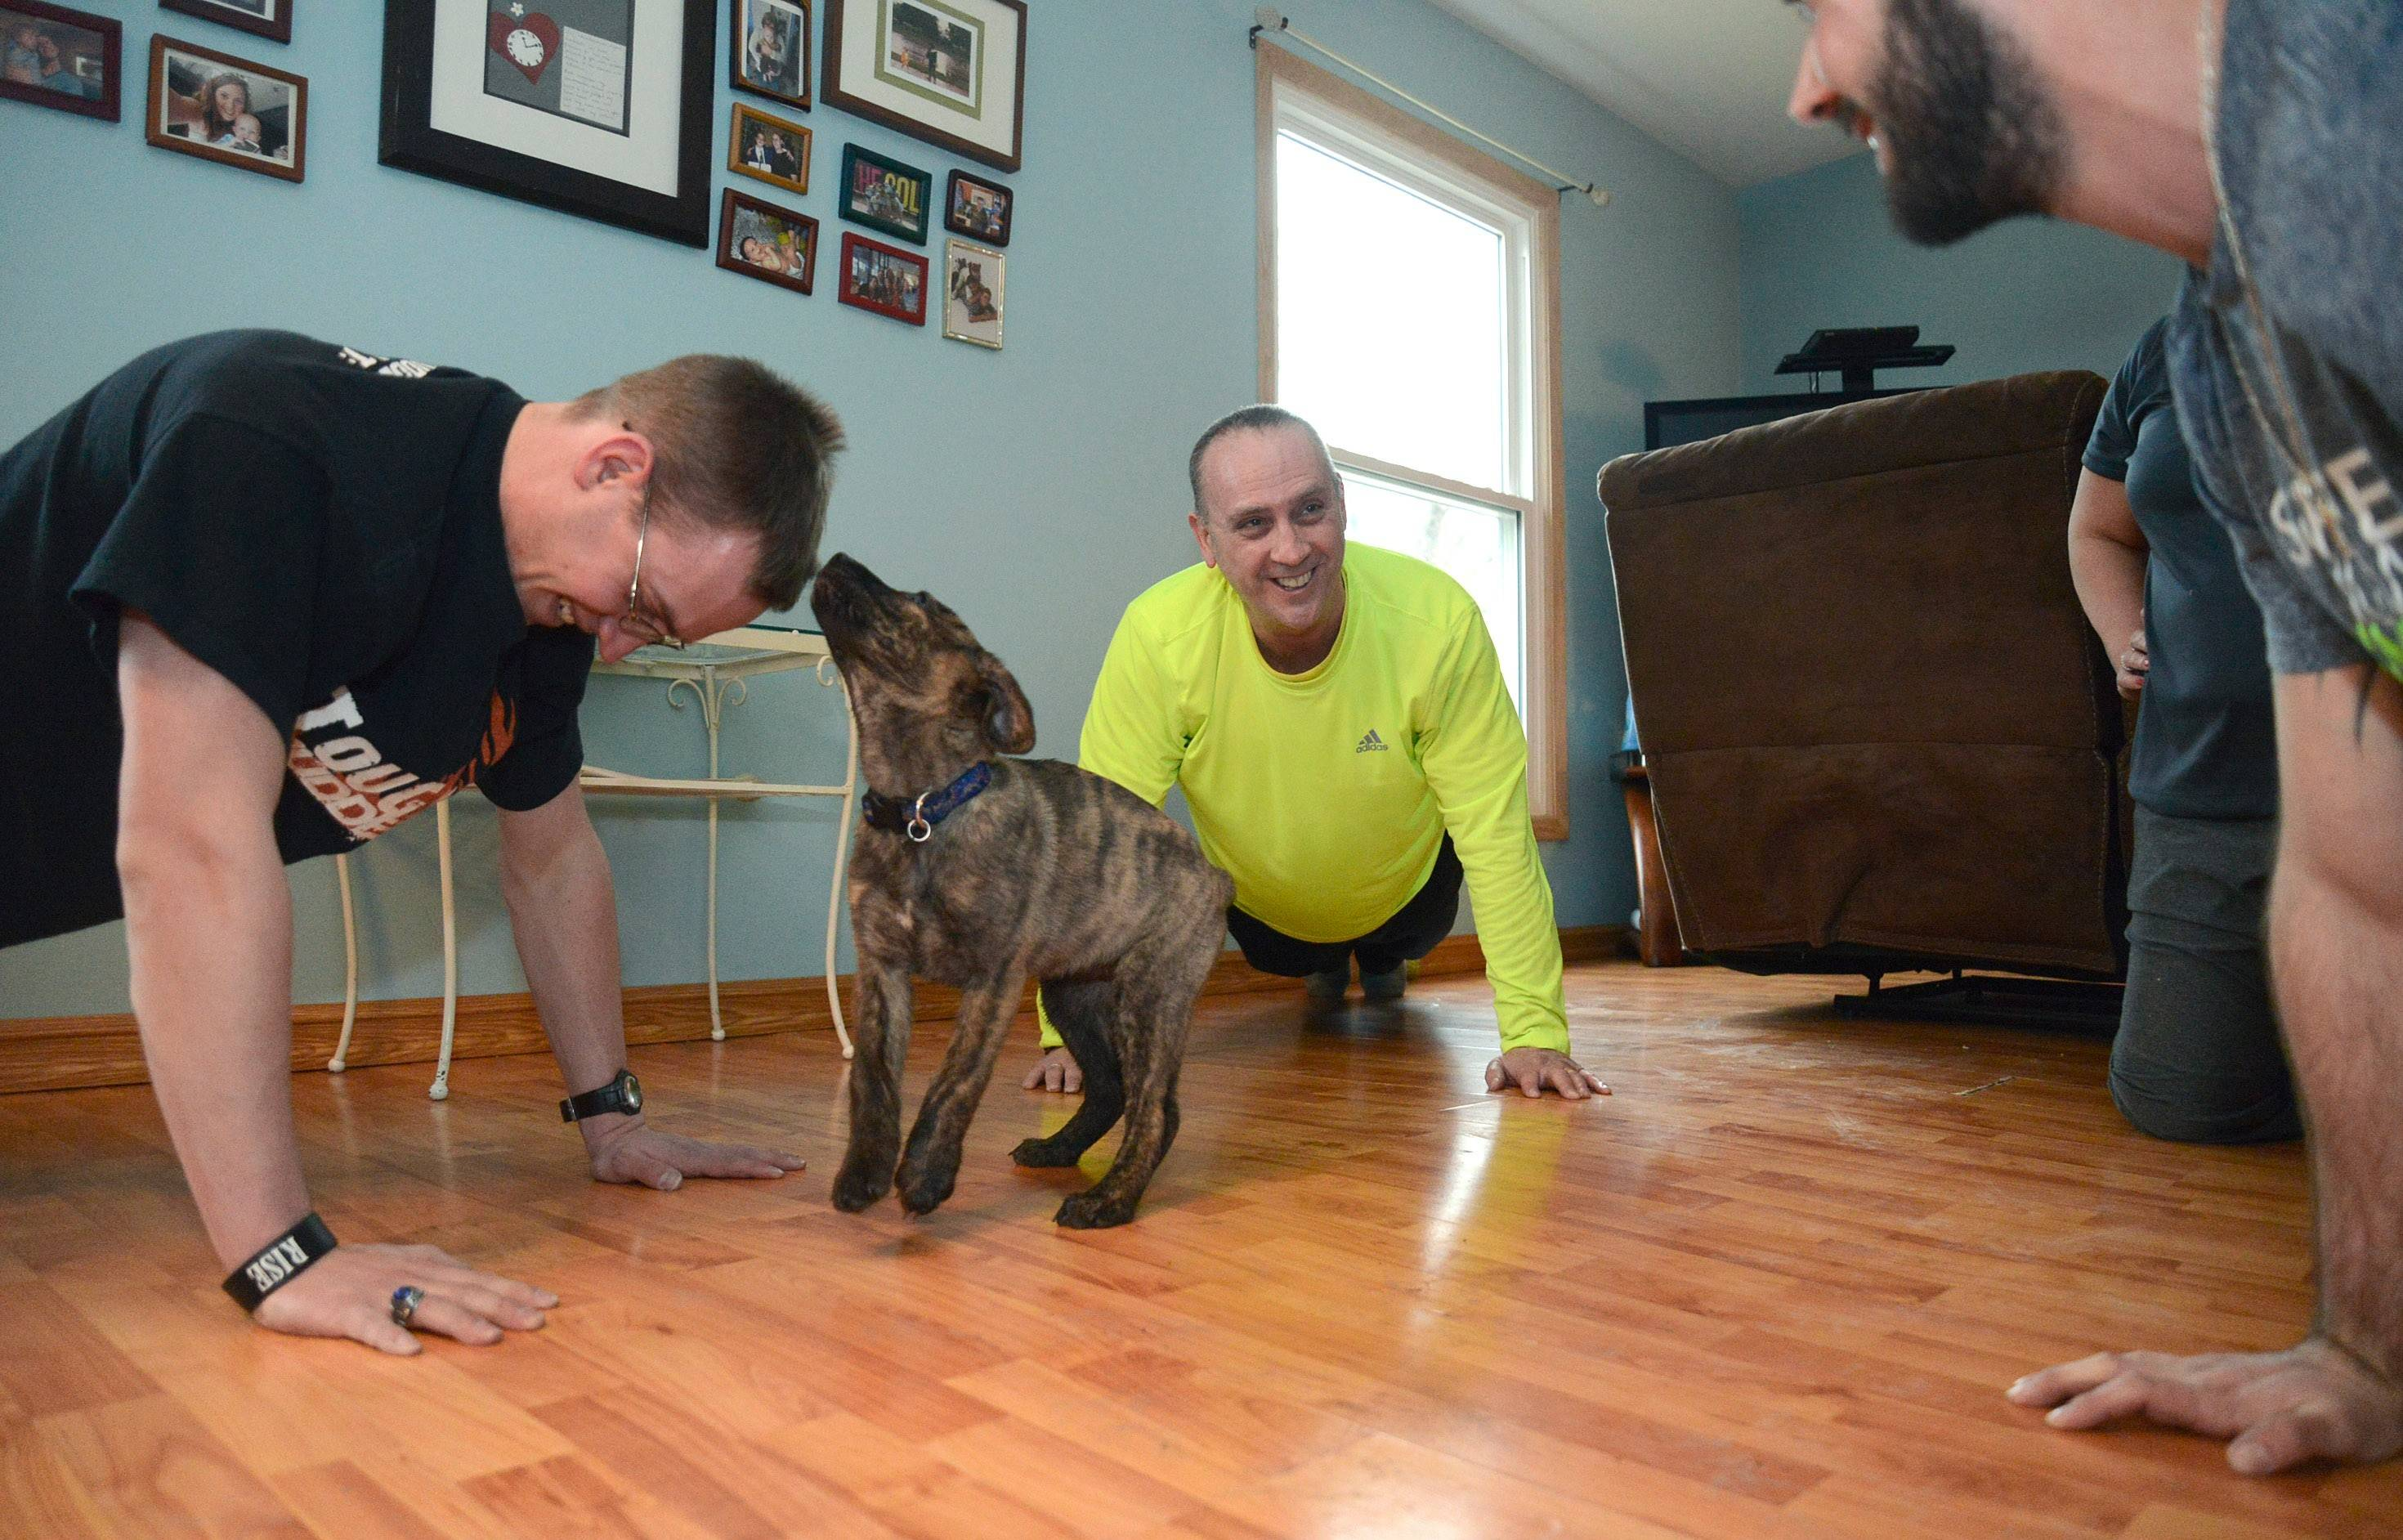 "Nowadays the Langes are off the couch and on the floor doing pushups. ""This truly has been a rebirth for me and my family,"" says Tim Lange of his Fittest Loser journey."